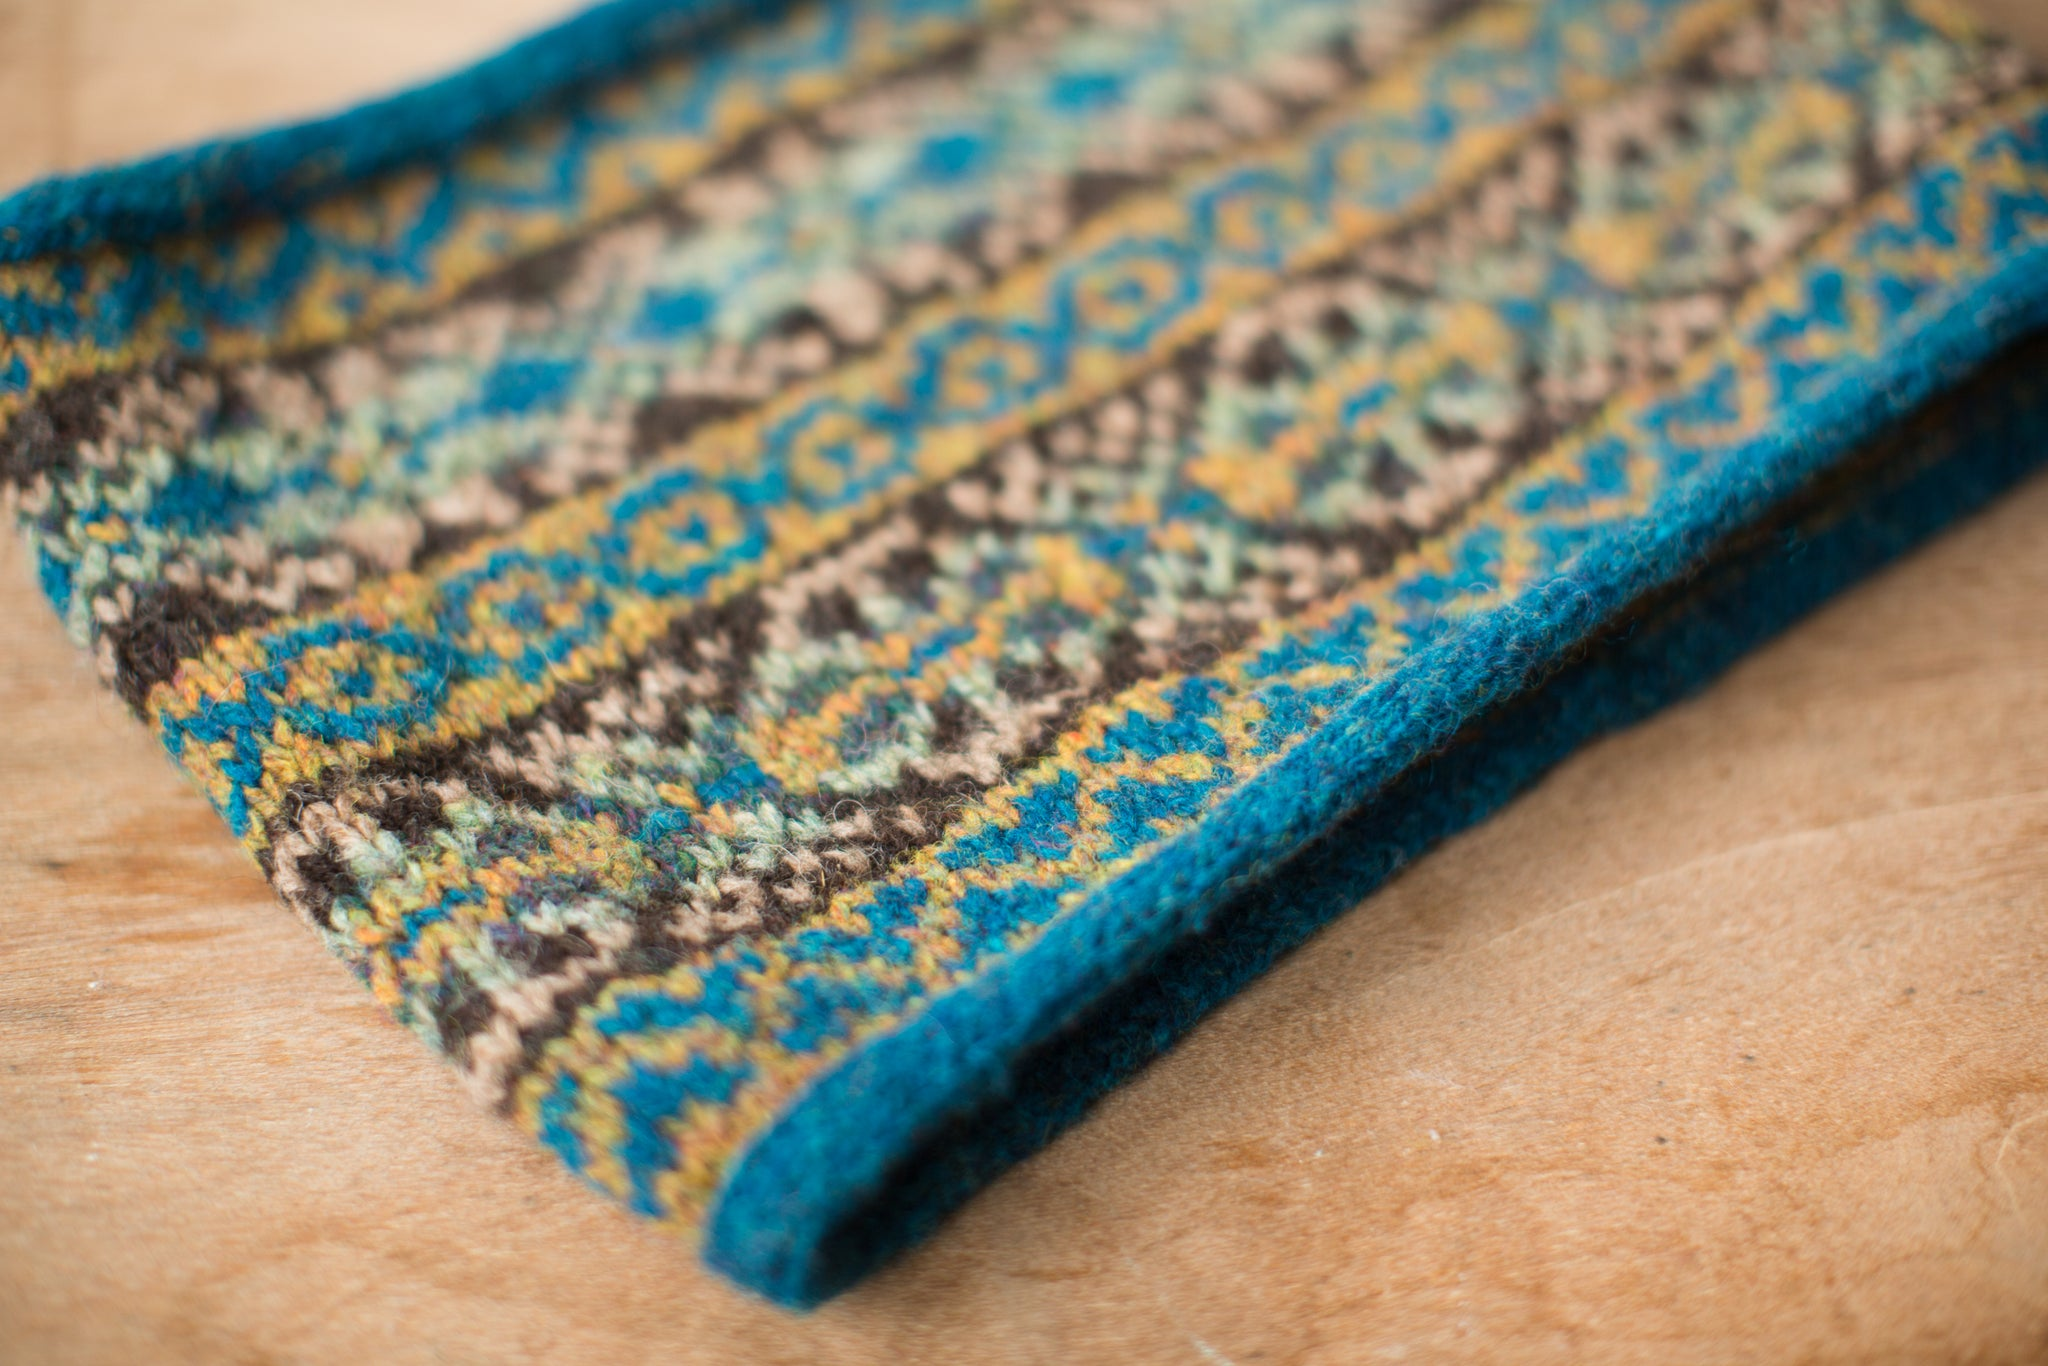 a colourwork cowl in blues, browns and earthy tones lays flat on wooden surface.